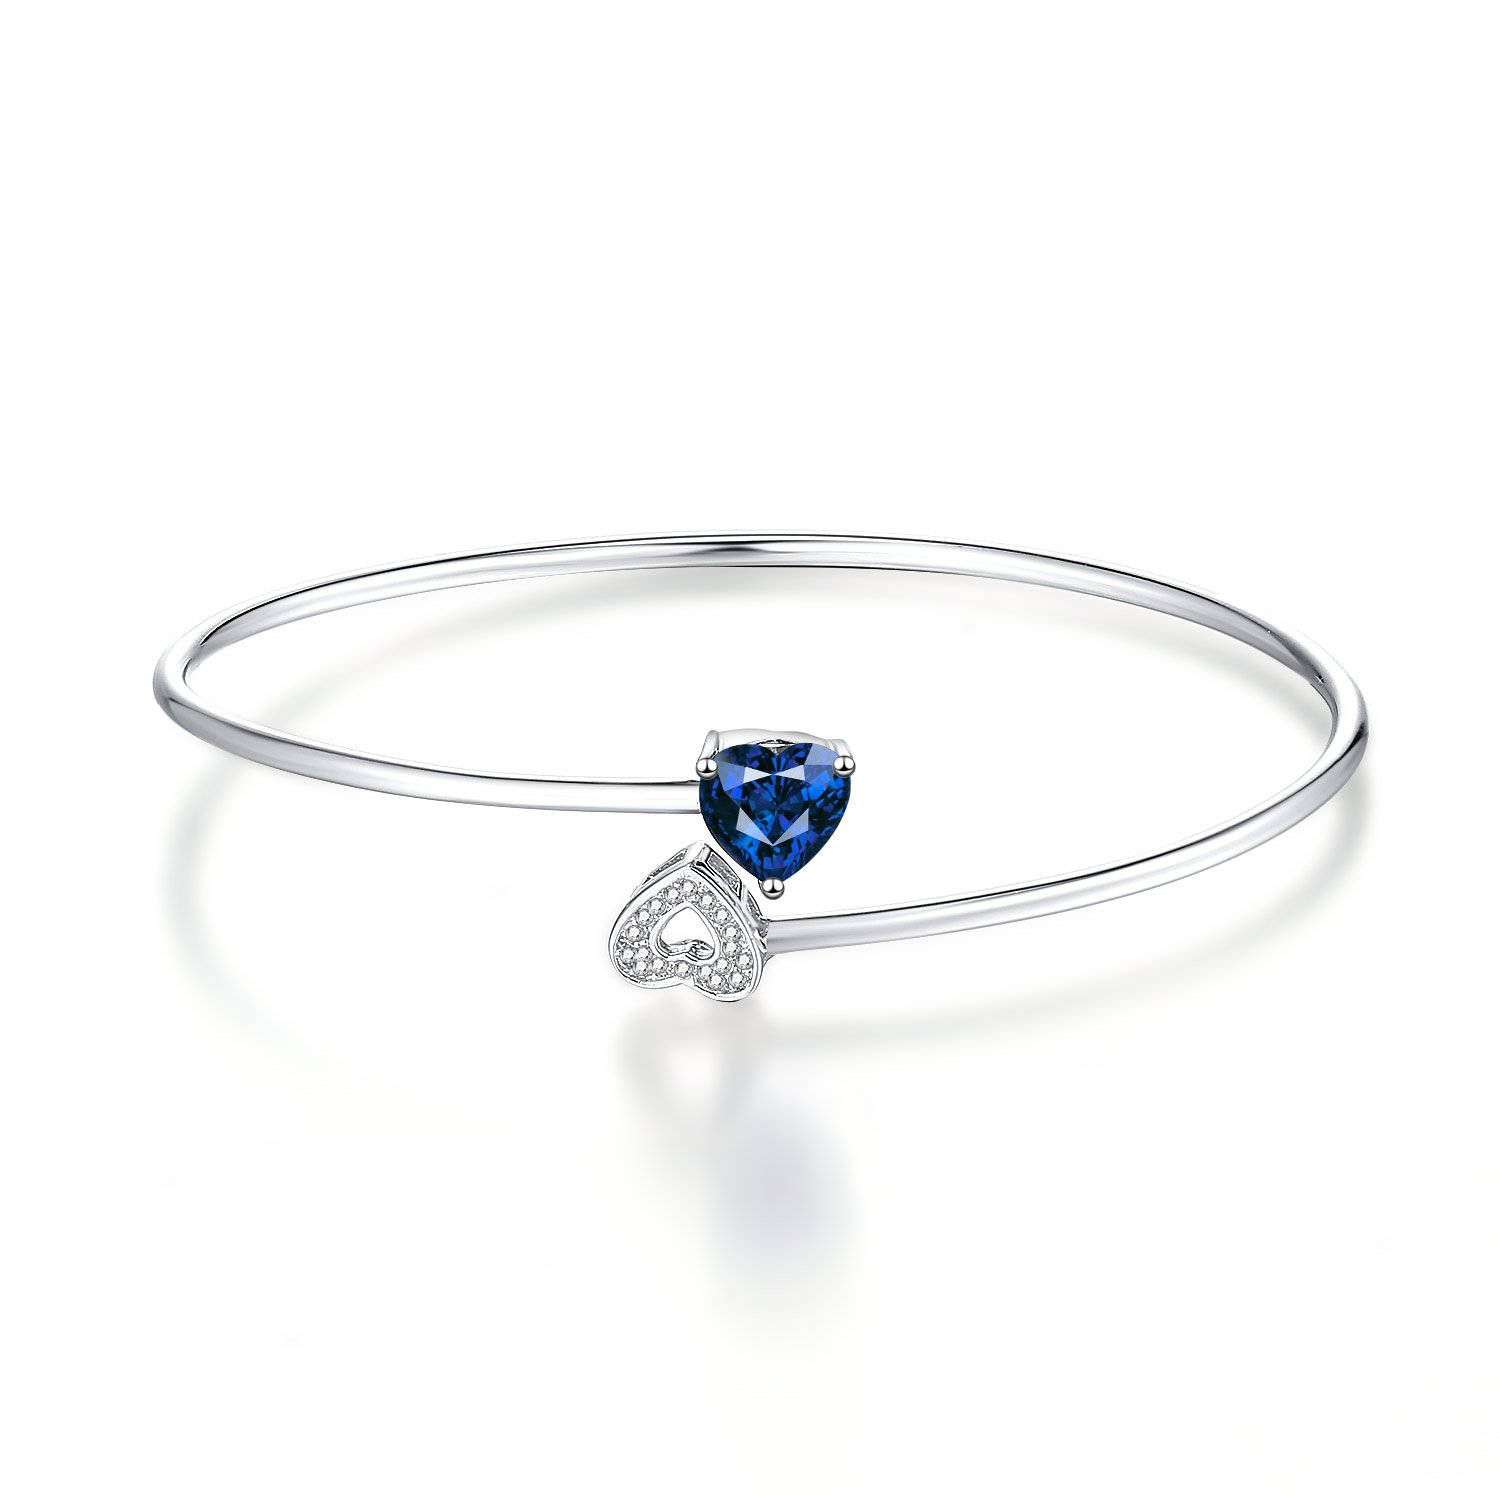 Caperci Sterling Silver Created Blue Sapphire Flex Double Heart Cuff Bangle Bracelet for Women, 7''